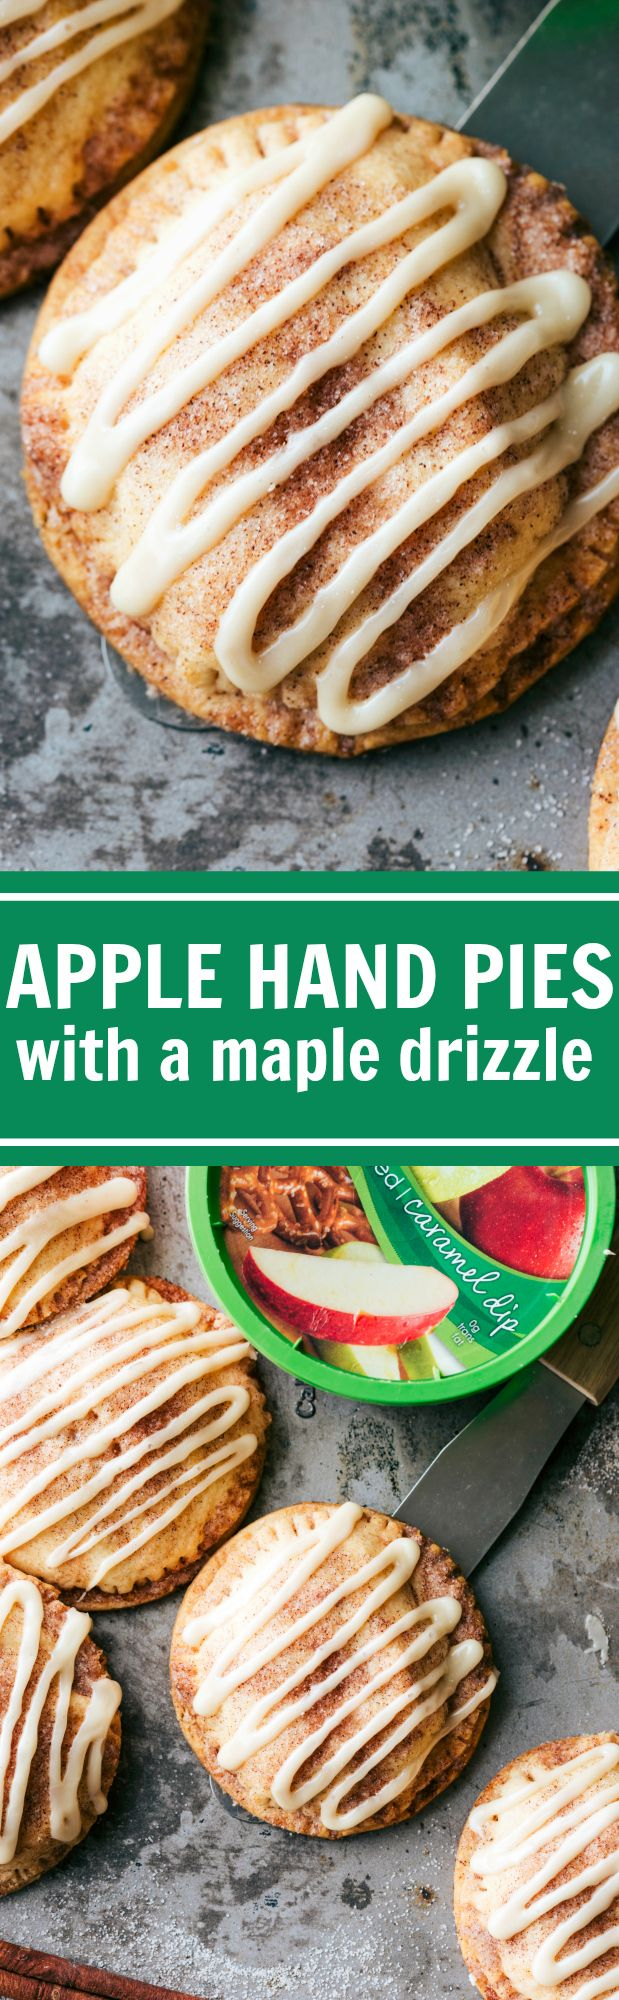 Delicious and flakey hand apple pies with an amazing maple-sugared glaze via chelseasmessyapron.com